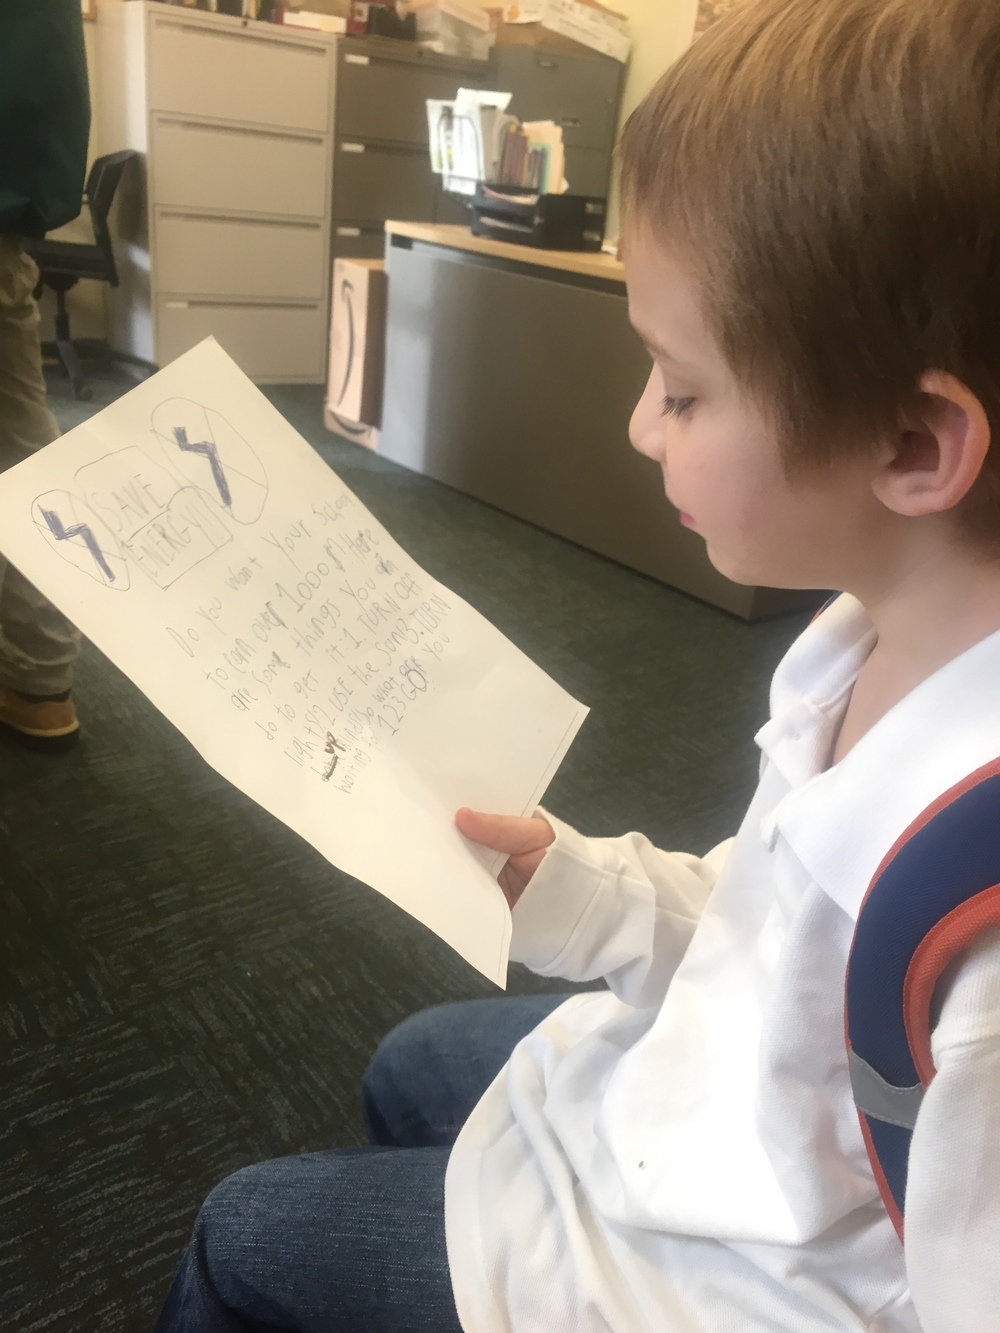 A student at Maury Elementary School reads an afternoon energy announcement that he composed.